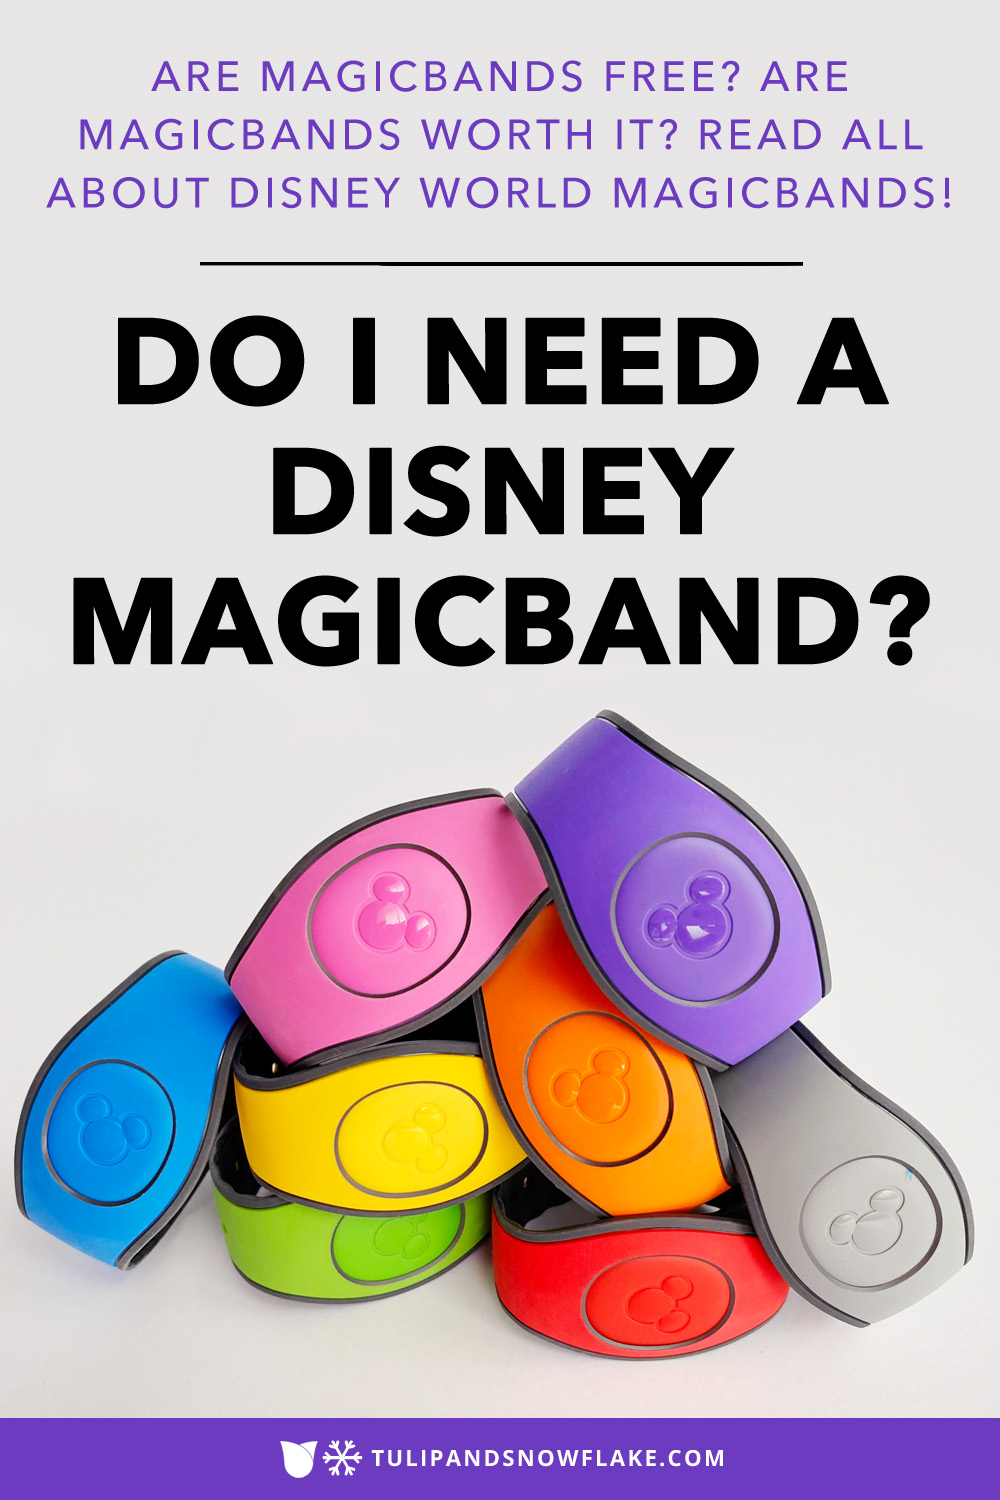 Do I need a Disney MagicBand?